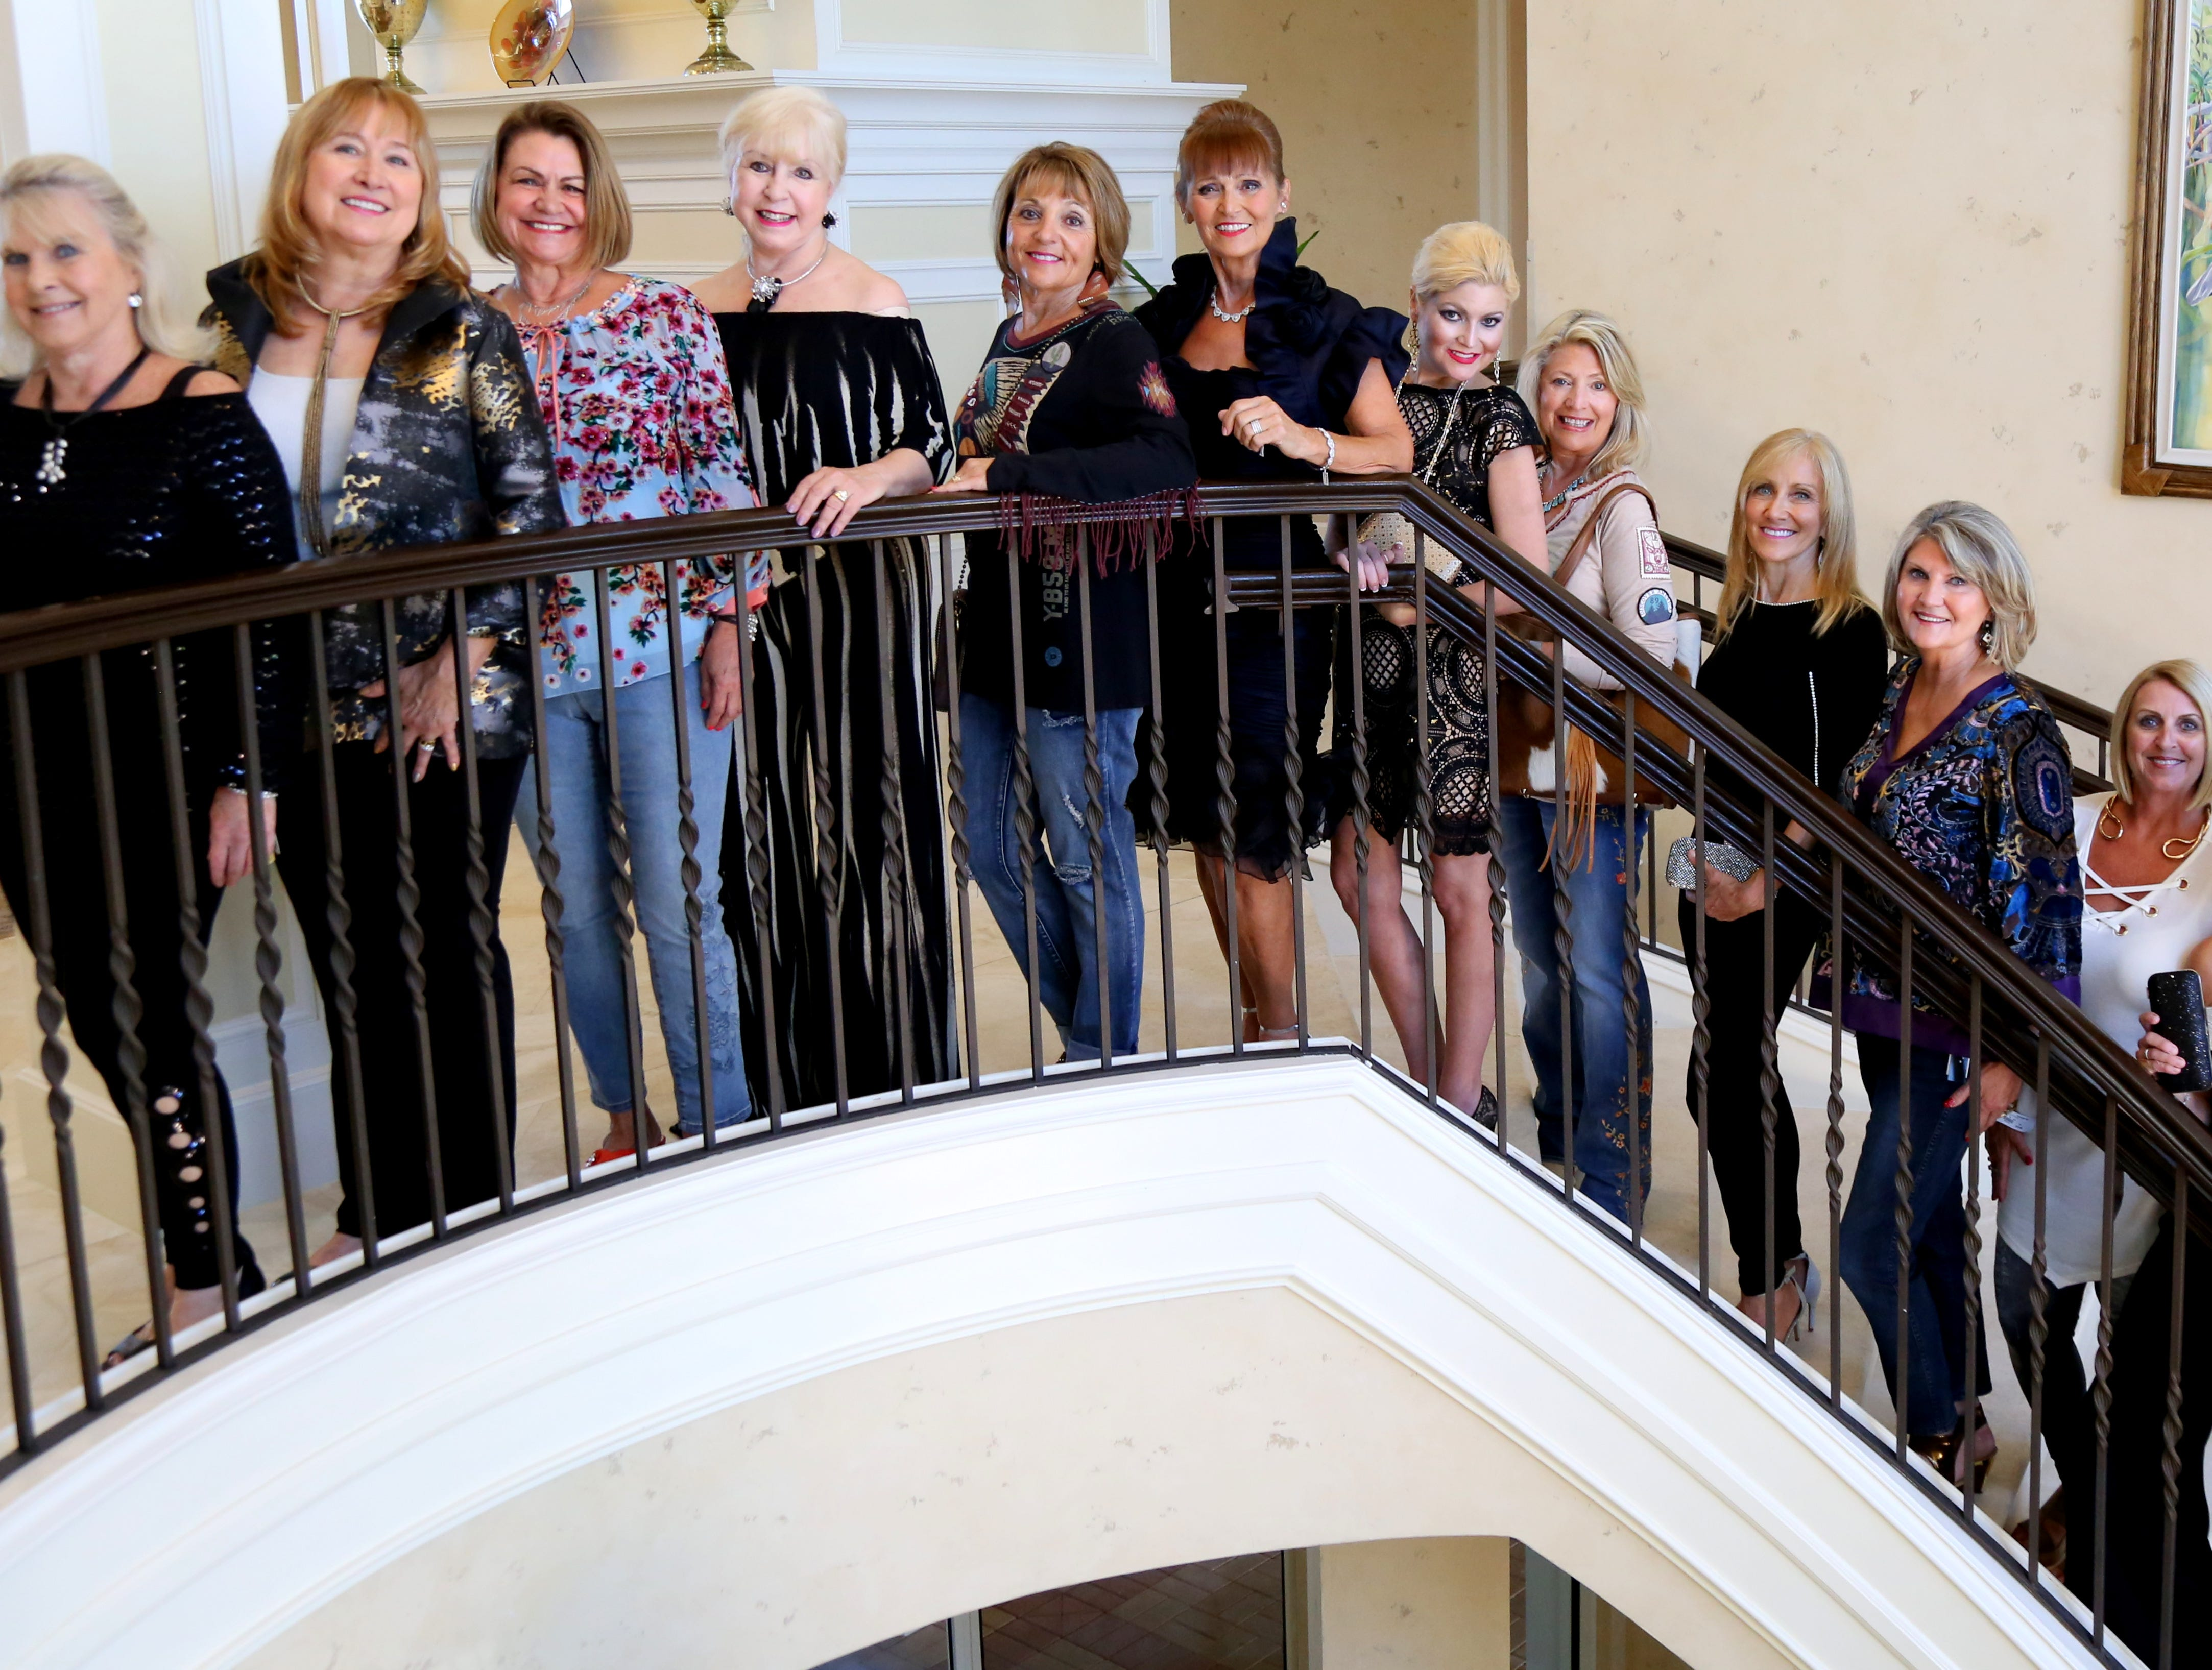 Photos: New members join the Newcomers Club of Marco Island